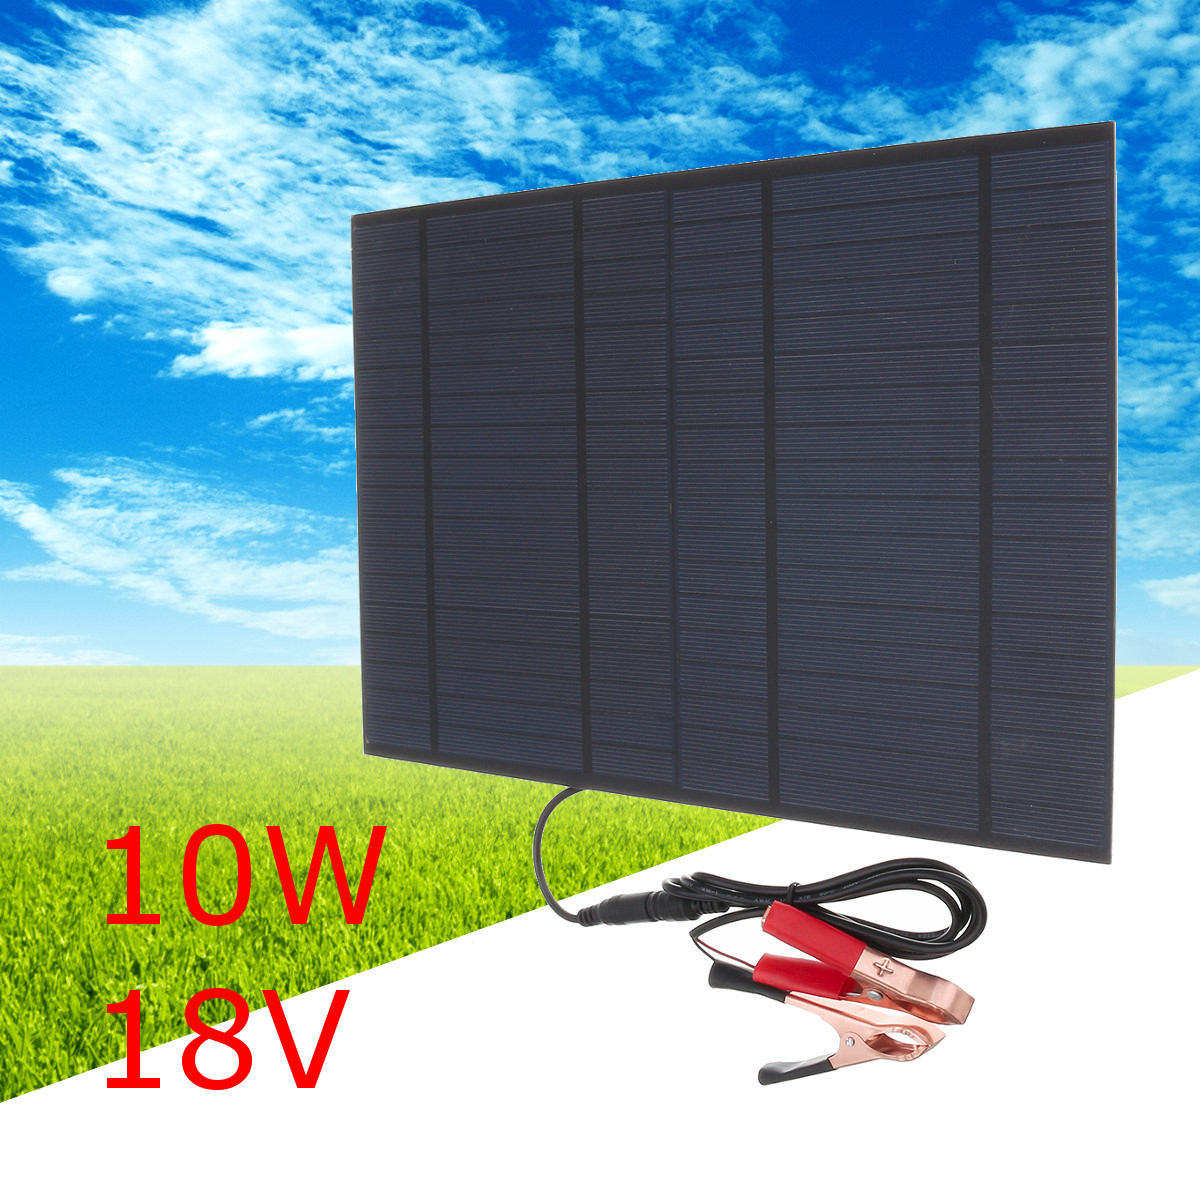 Solar Panel 18V 10W 0.55A monocrystalline polycrystalline DIY module cell charge for 12V battery 10 watts With 2 Clips and Cable